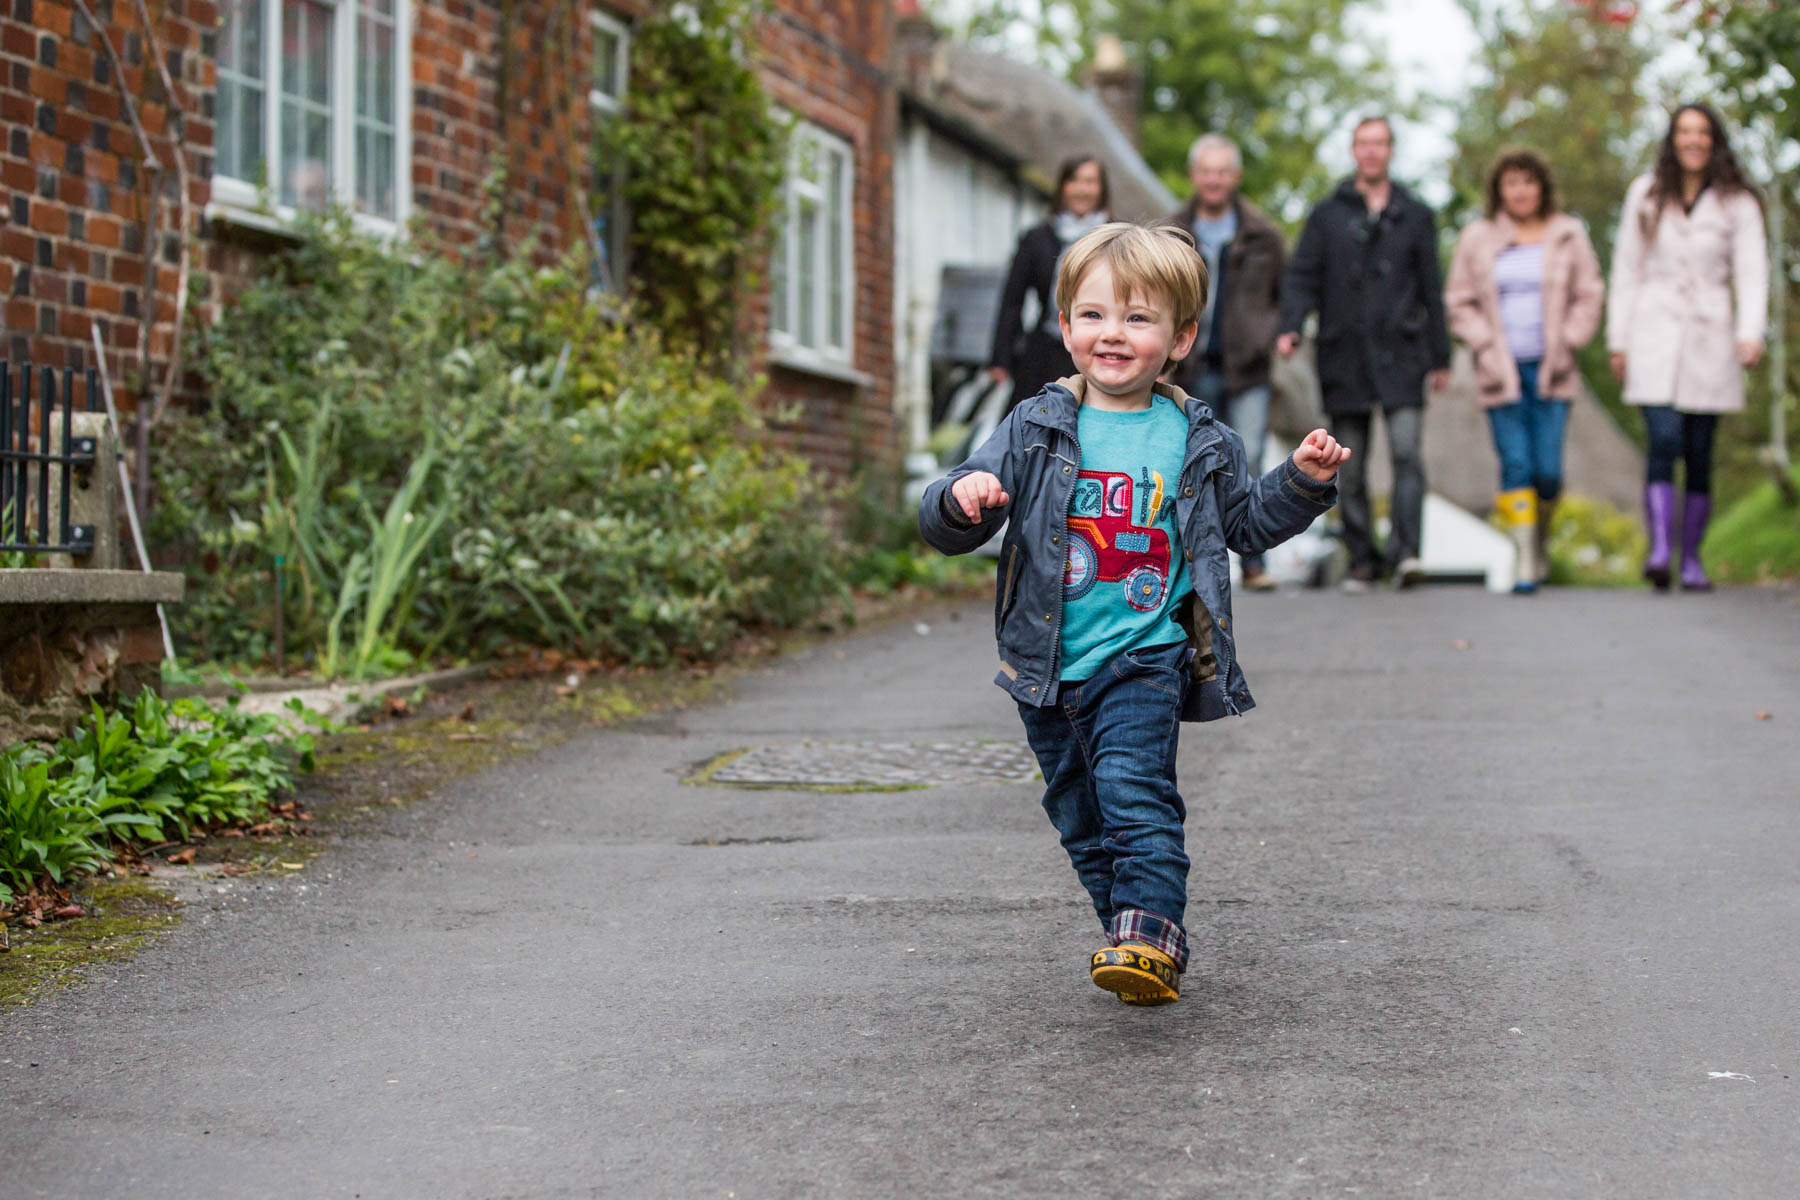 Fun family photography in Wiltshire by Richard Murgatroyd